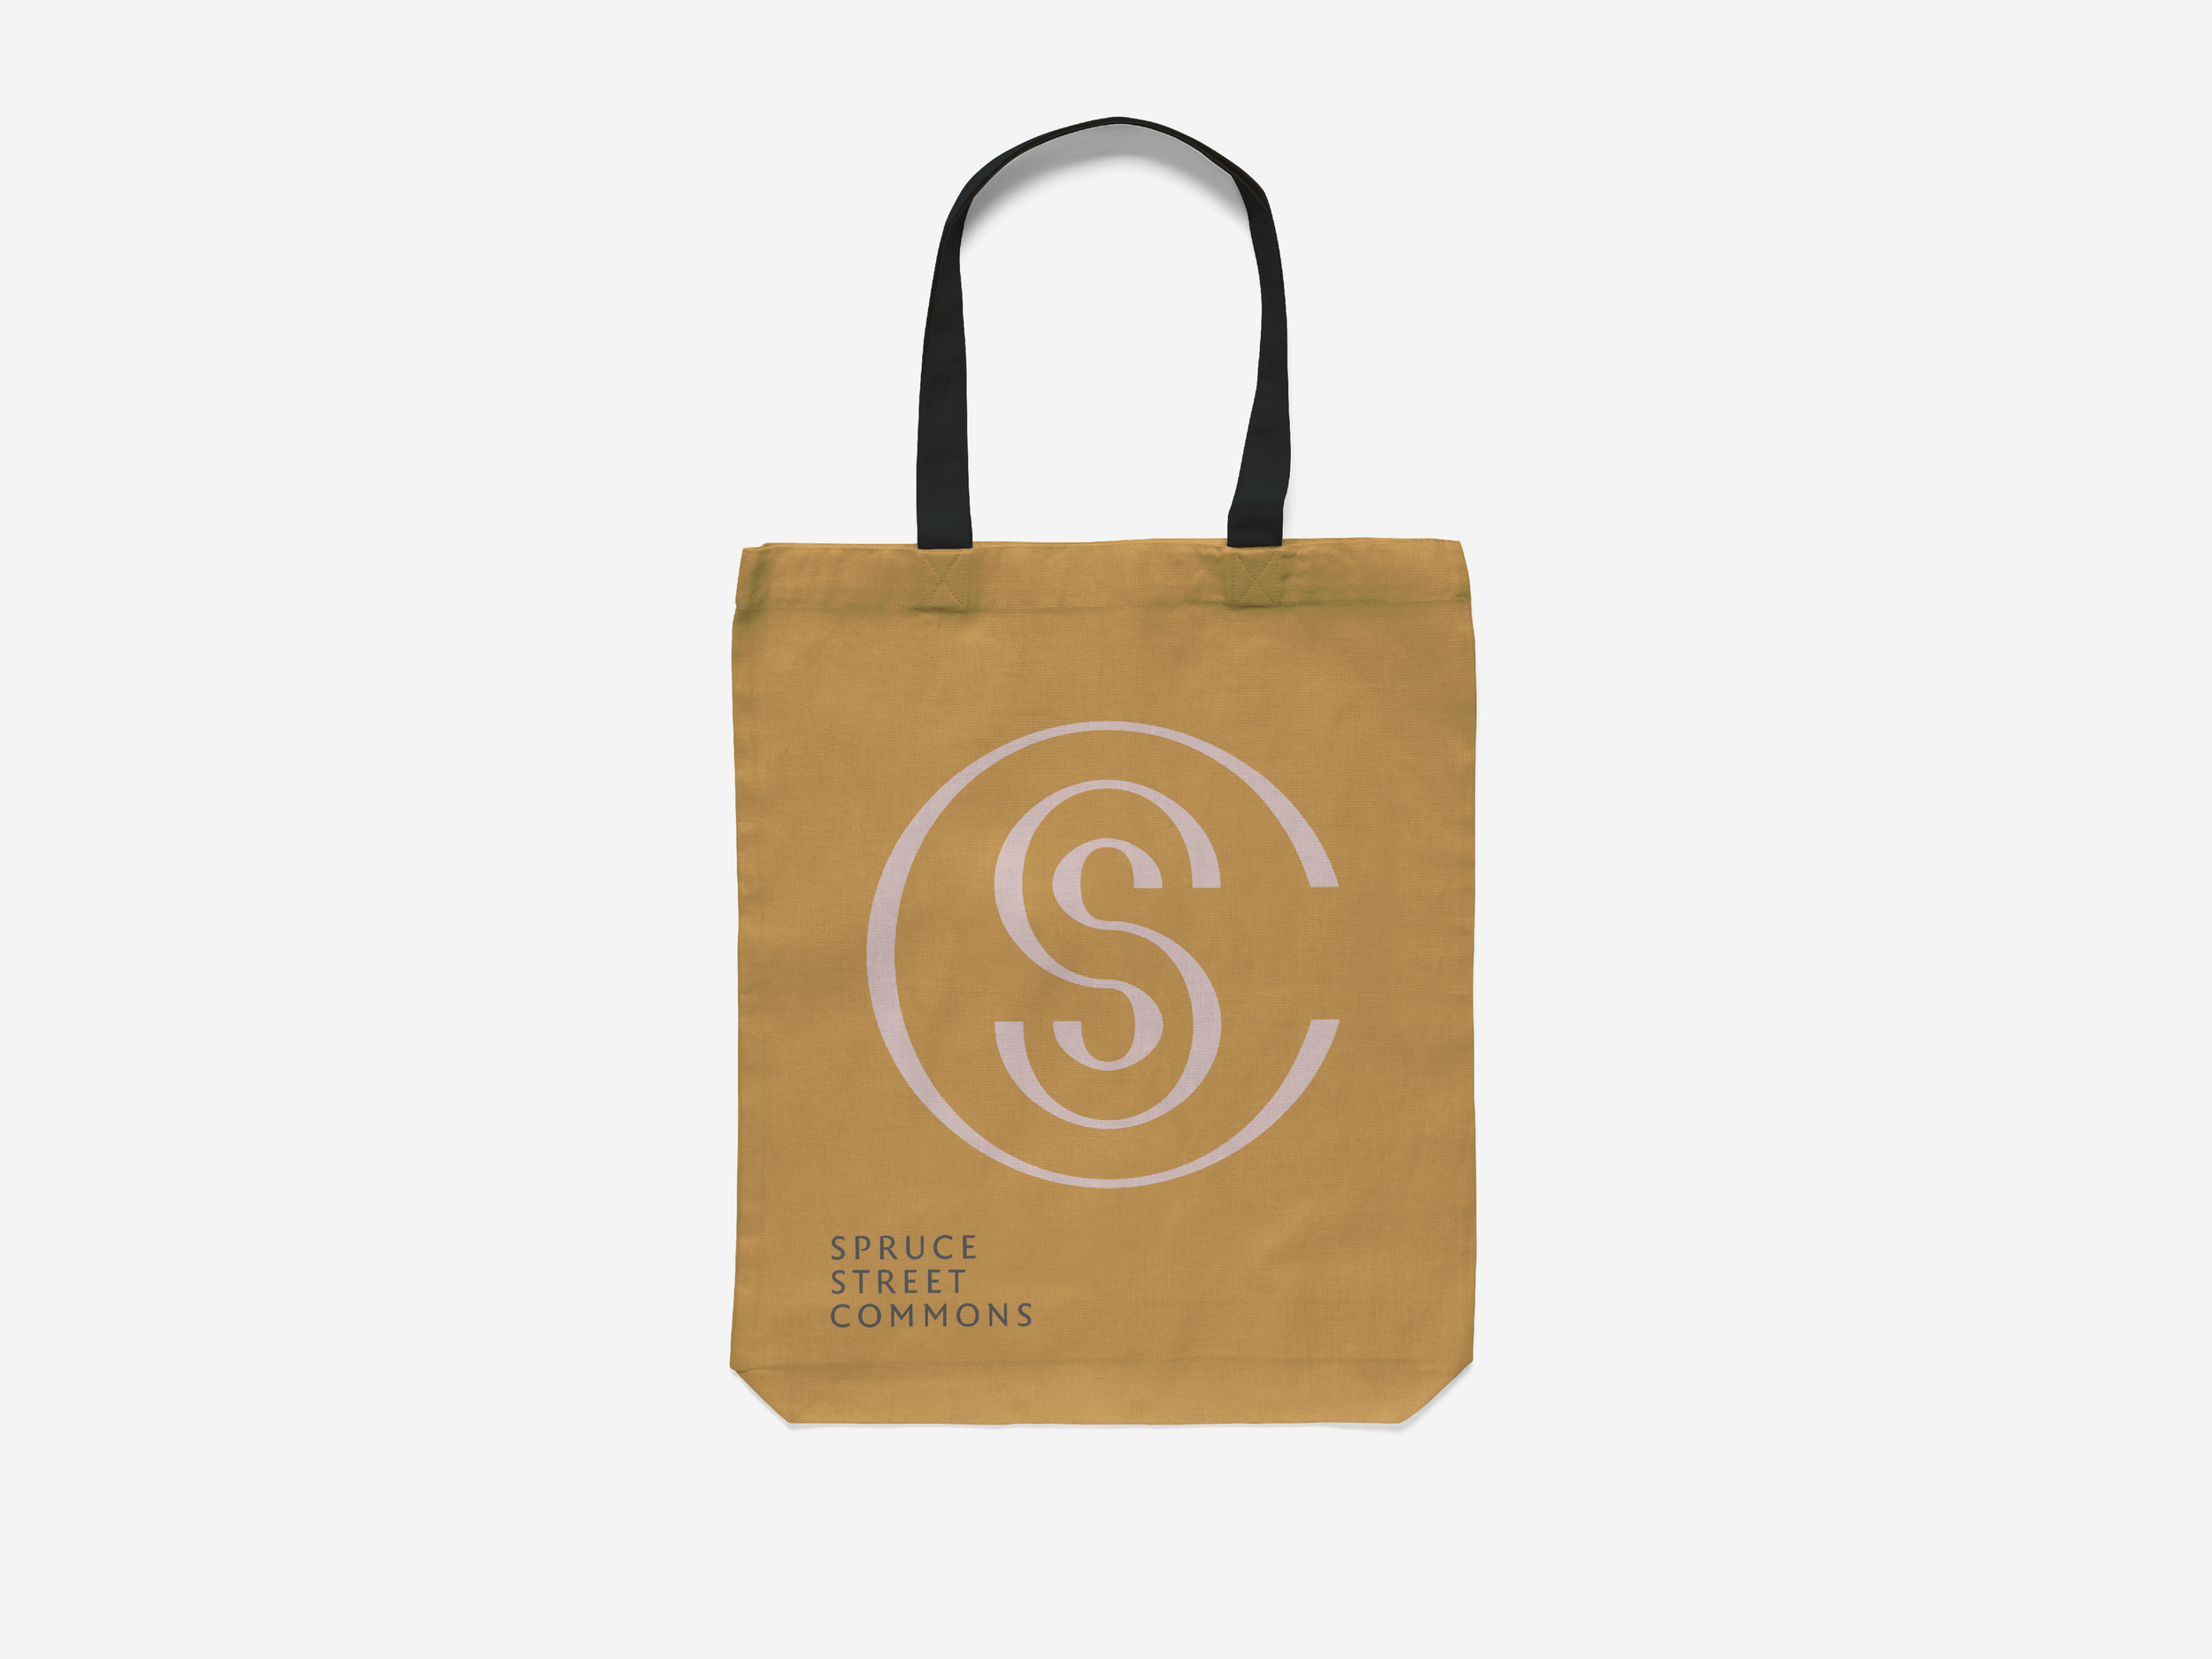 33 Spruce Street Commons branded bag.png